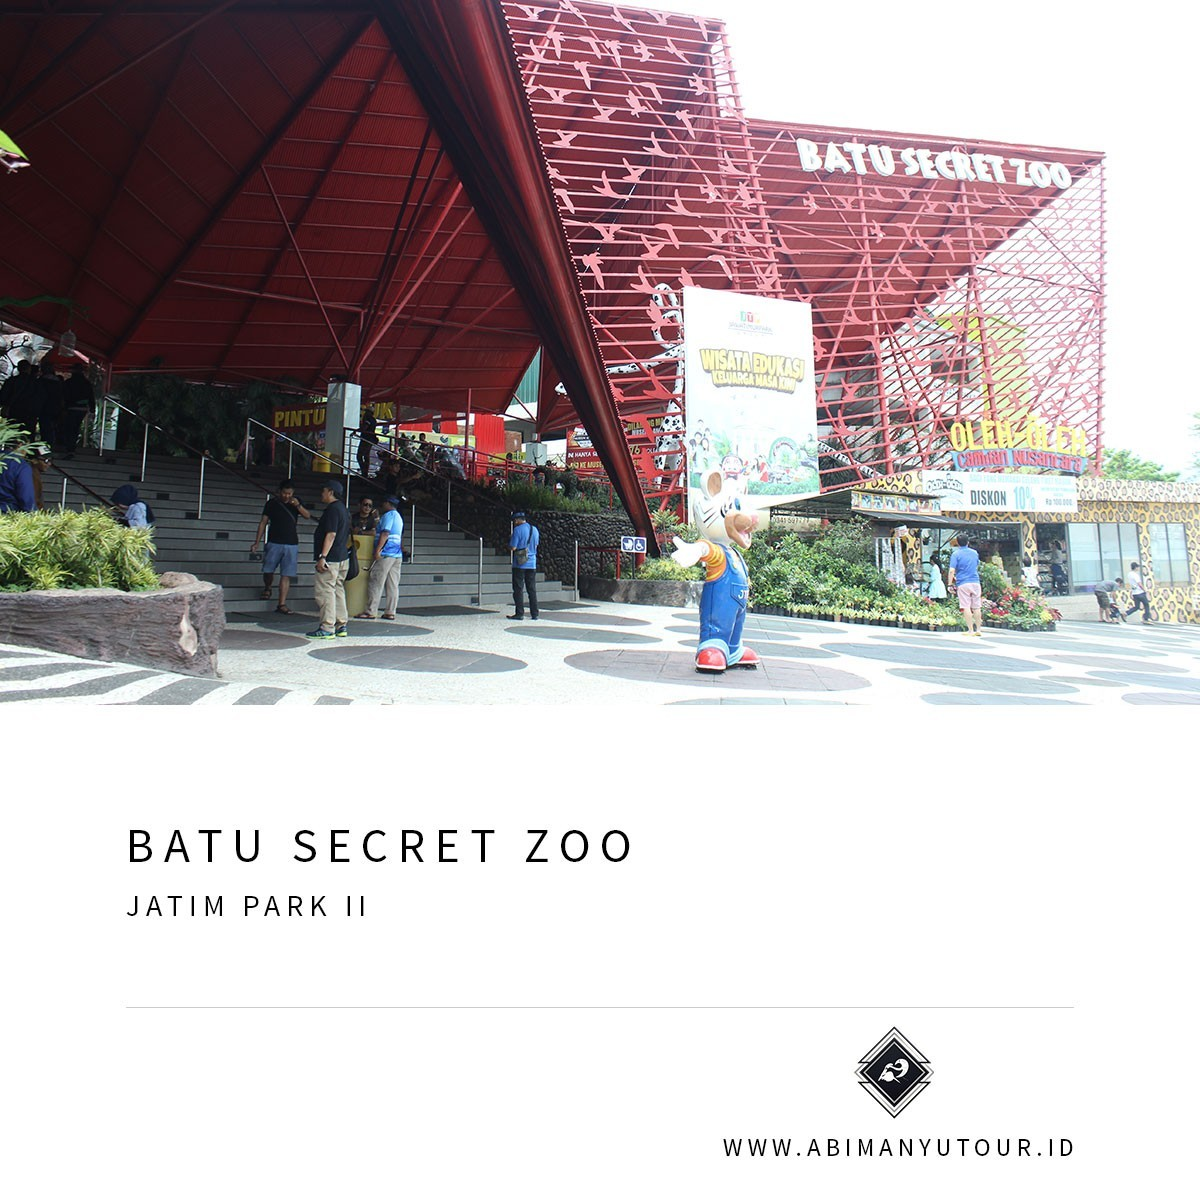 JATIM PARK II BATU SECRET ZOO